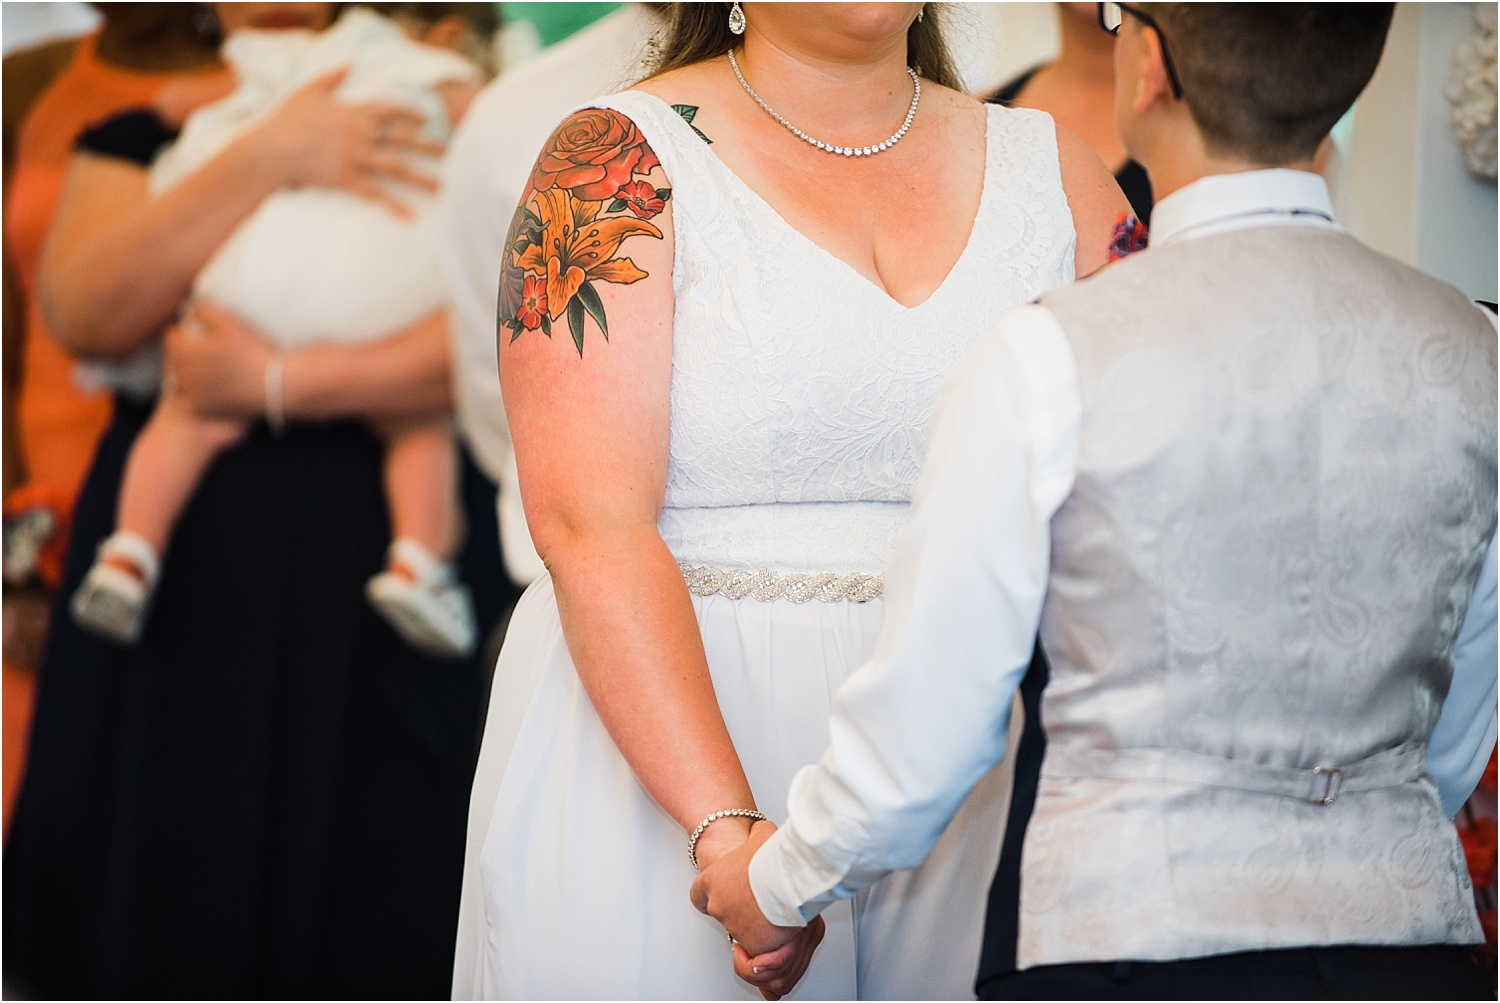 The_Riverview_Simsbury_Connecticut_Wedding_LGBT_Weddings_031.jpg